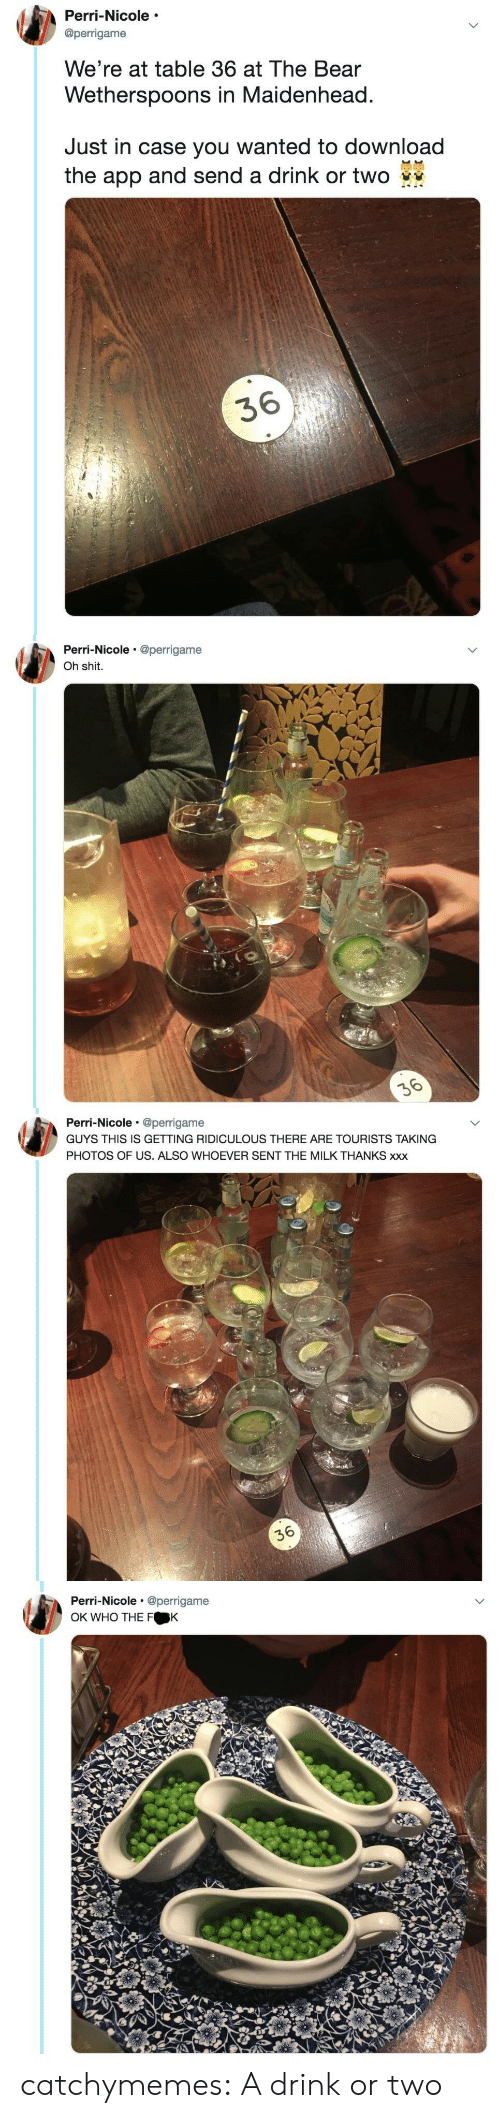 perri: Perri-Nicole  @perrigame  We're at table 36 at The Bear  Wetherspoons in Maidenhead  Just in case you wanted to download  the app and send a drink or two  36   Perri-Nicole @perrigame  Oh shit.   Perri-Nicole @perrigame  GUYS THIS IS GETTING RIDICULOUS THERE ARE TOURISTS TAKING  PHOTOS OF US. ALSO WHOEVER SENT THE MILK THANKS xxx  36   Perri-Nicole @perrigame  OK WHO THE F K catchymemes: A drink or two